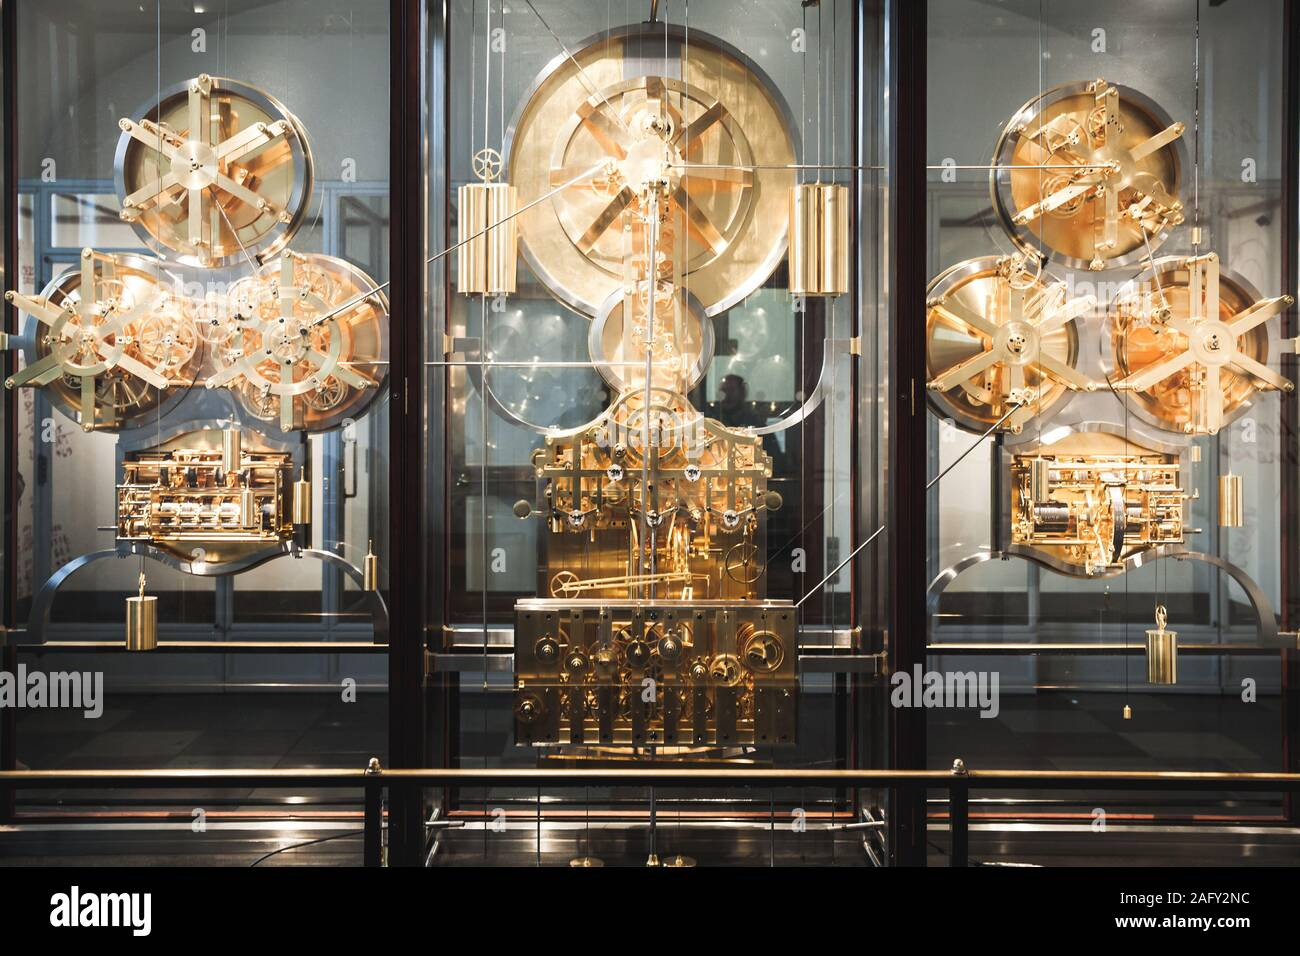 Copenhagen, Denmark - December 9, 2017: Jens Olsen World Clock or Verdensur is an advanced astronomical clock which is displayed in Copenhagen City Ha Stock Photo